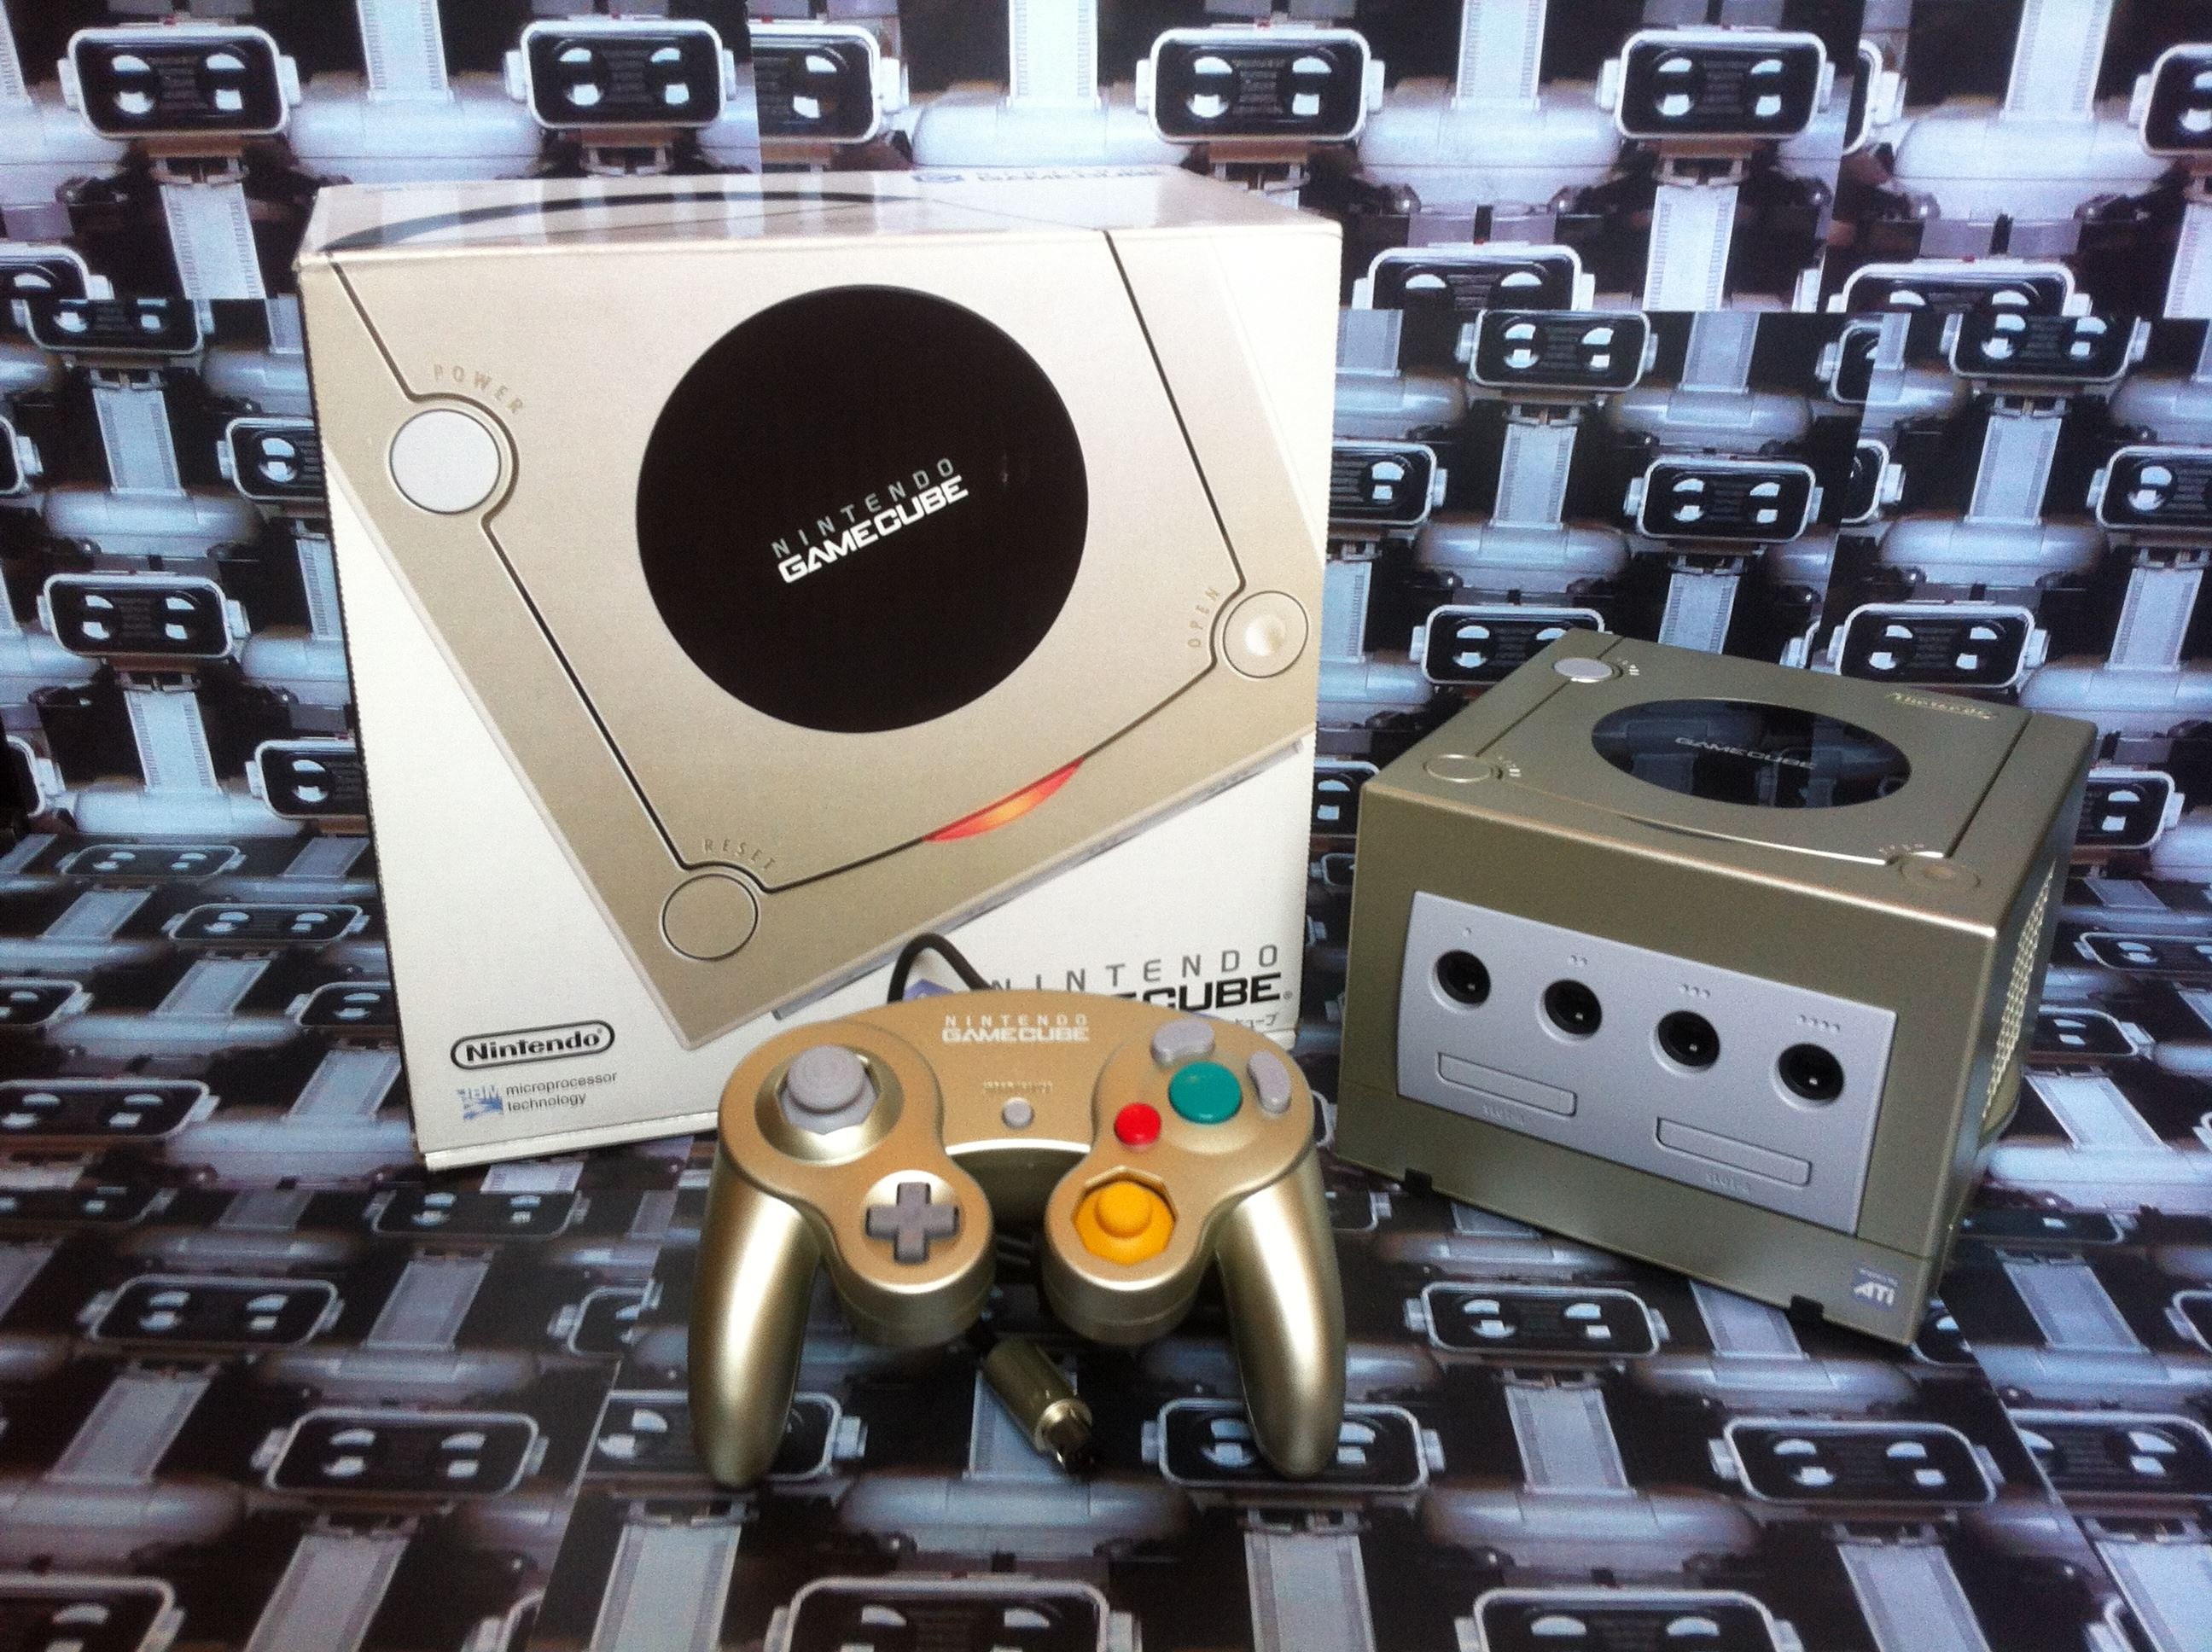 www.nintendo-collection.com - Gamecube Starlight Gold Or Toy's R Us Toysrus Limited edition Japanese